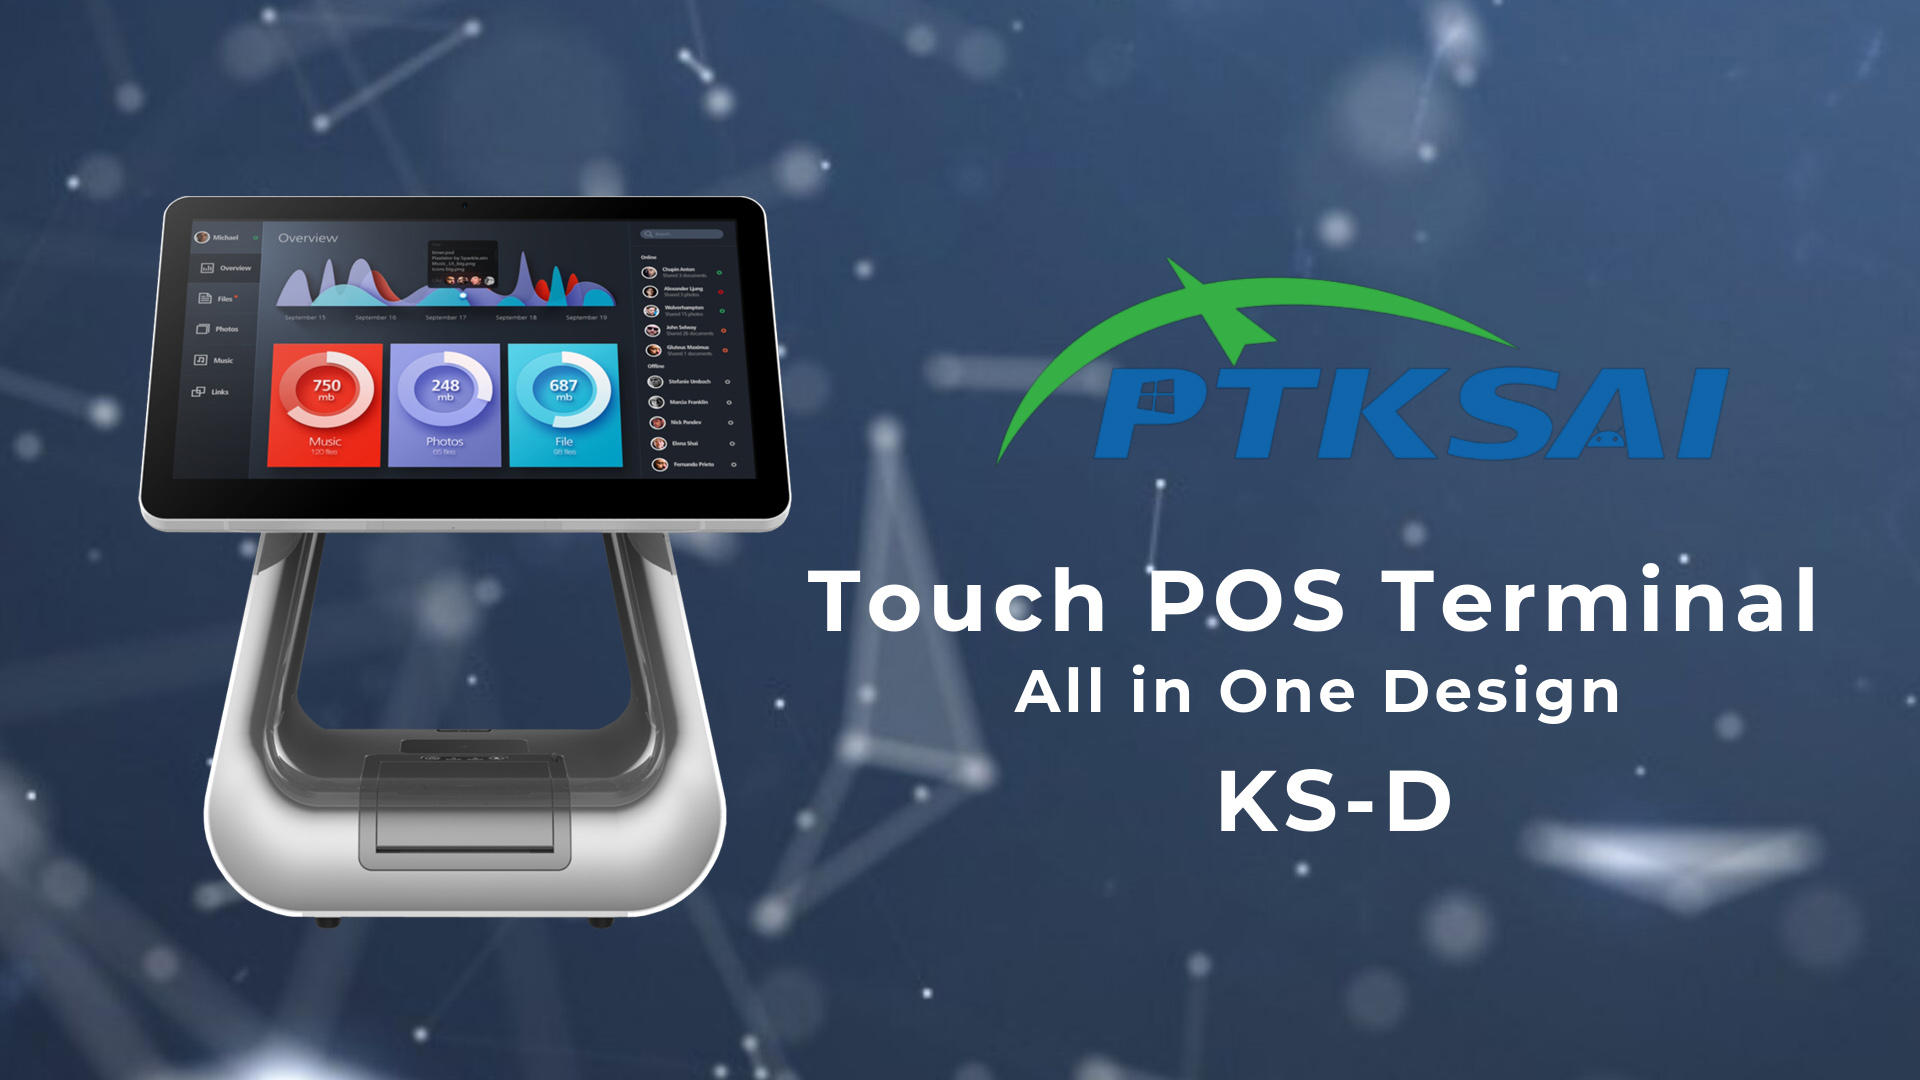 KS-D square pos customer facing display